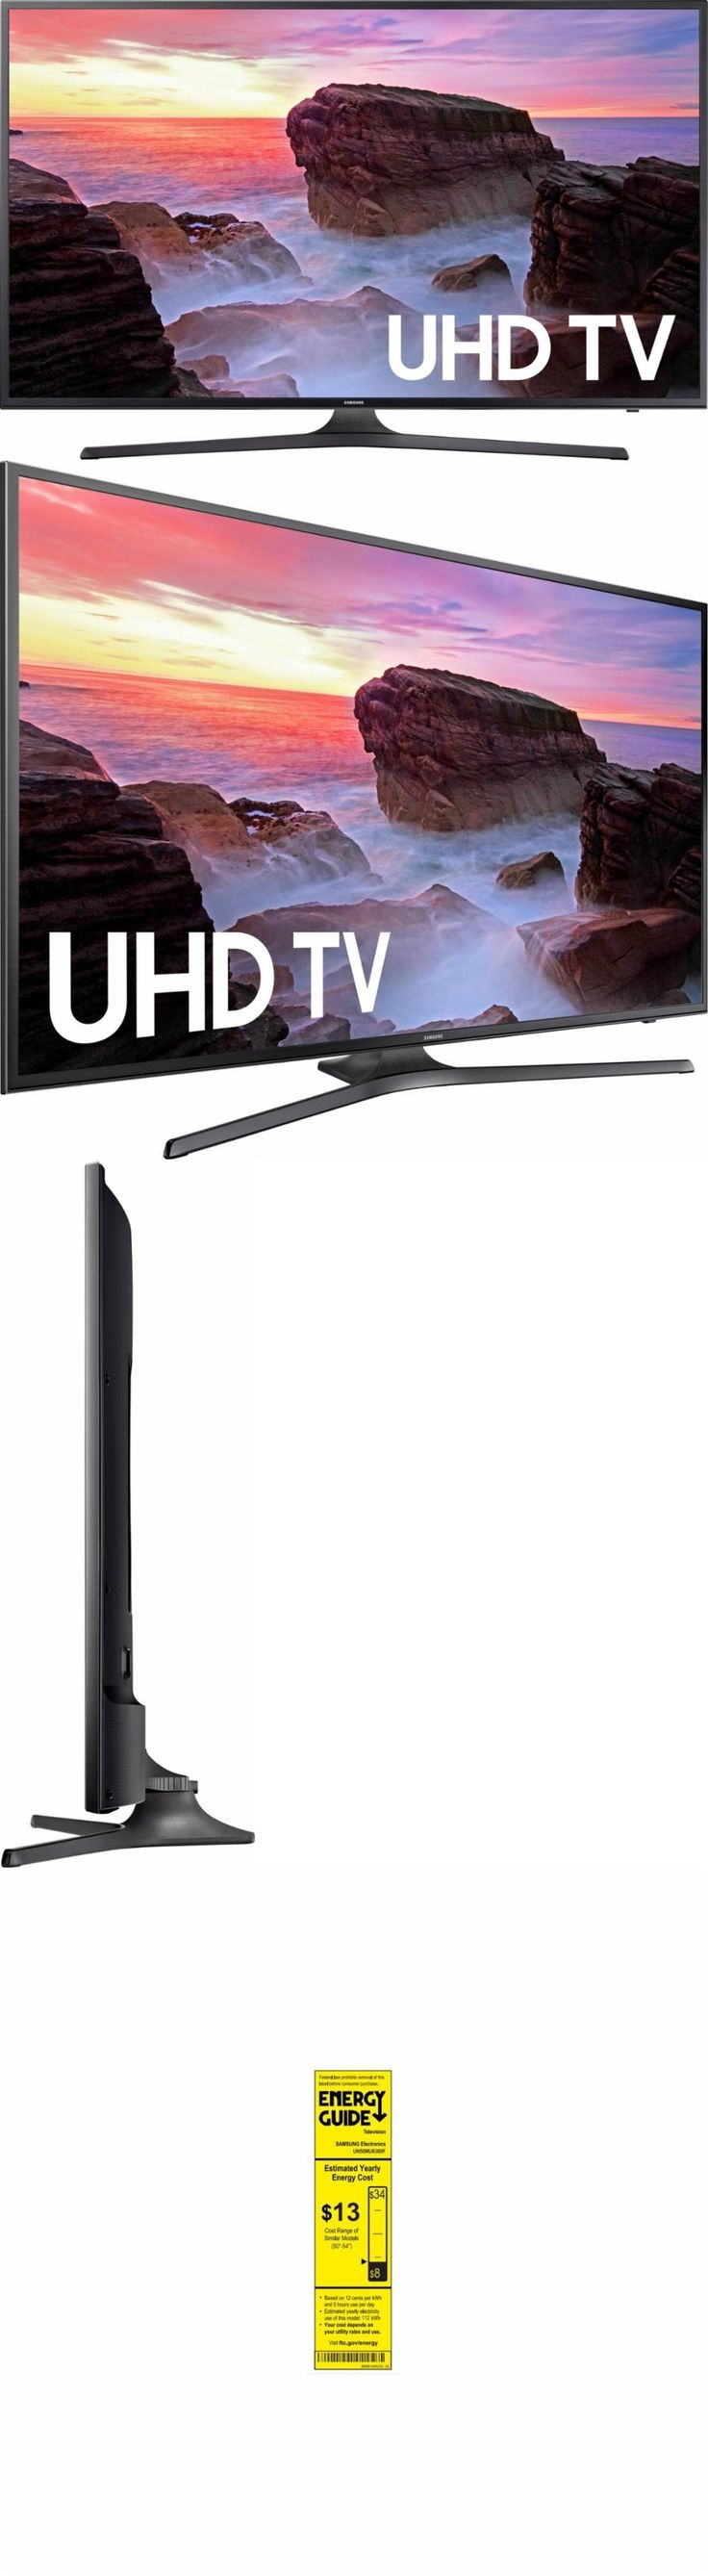 Televisions: Samsung 50 Inch 4K Ultra Hd Hdr Smart Tv Un50mu6300f Uhd Tv Brand New -> BUY IT NOW ONLY: $594.95 on eBay!